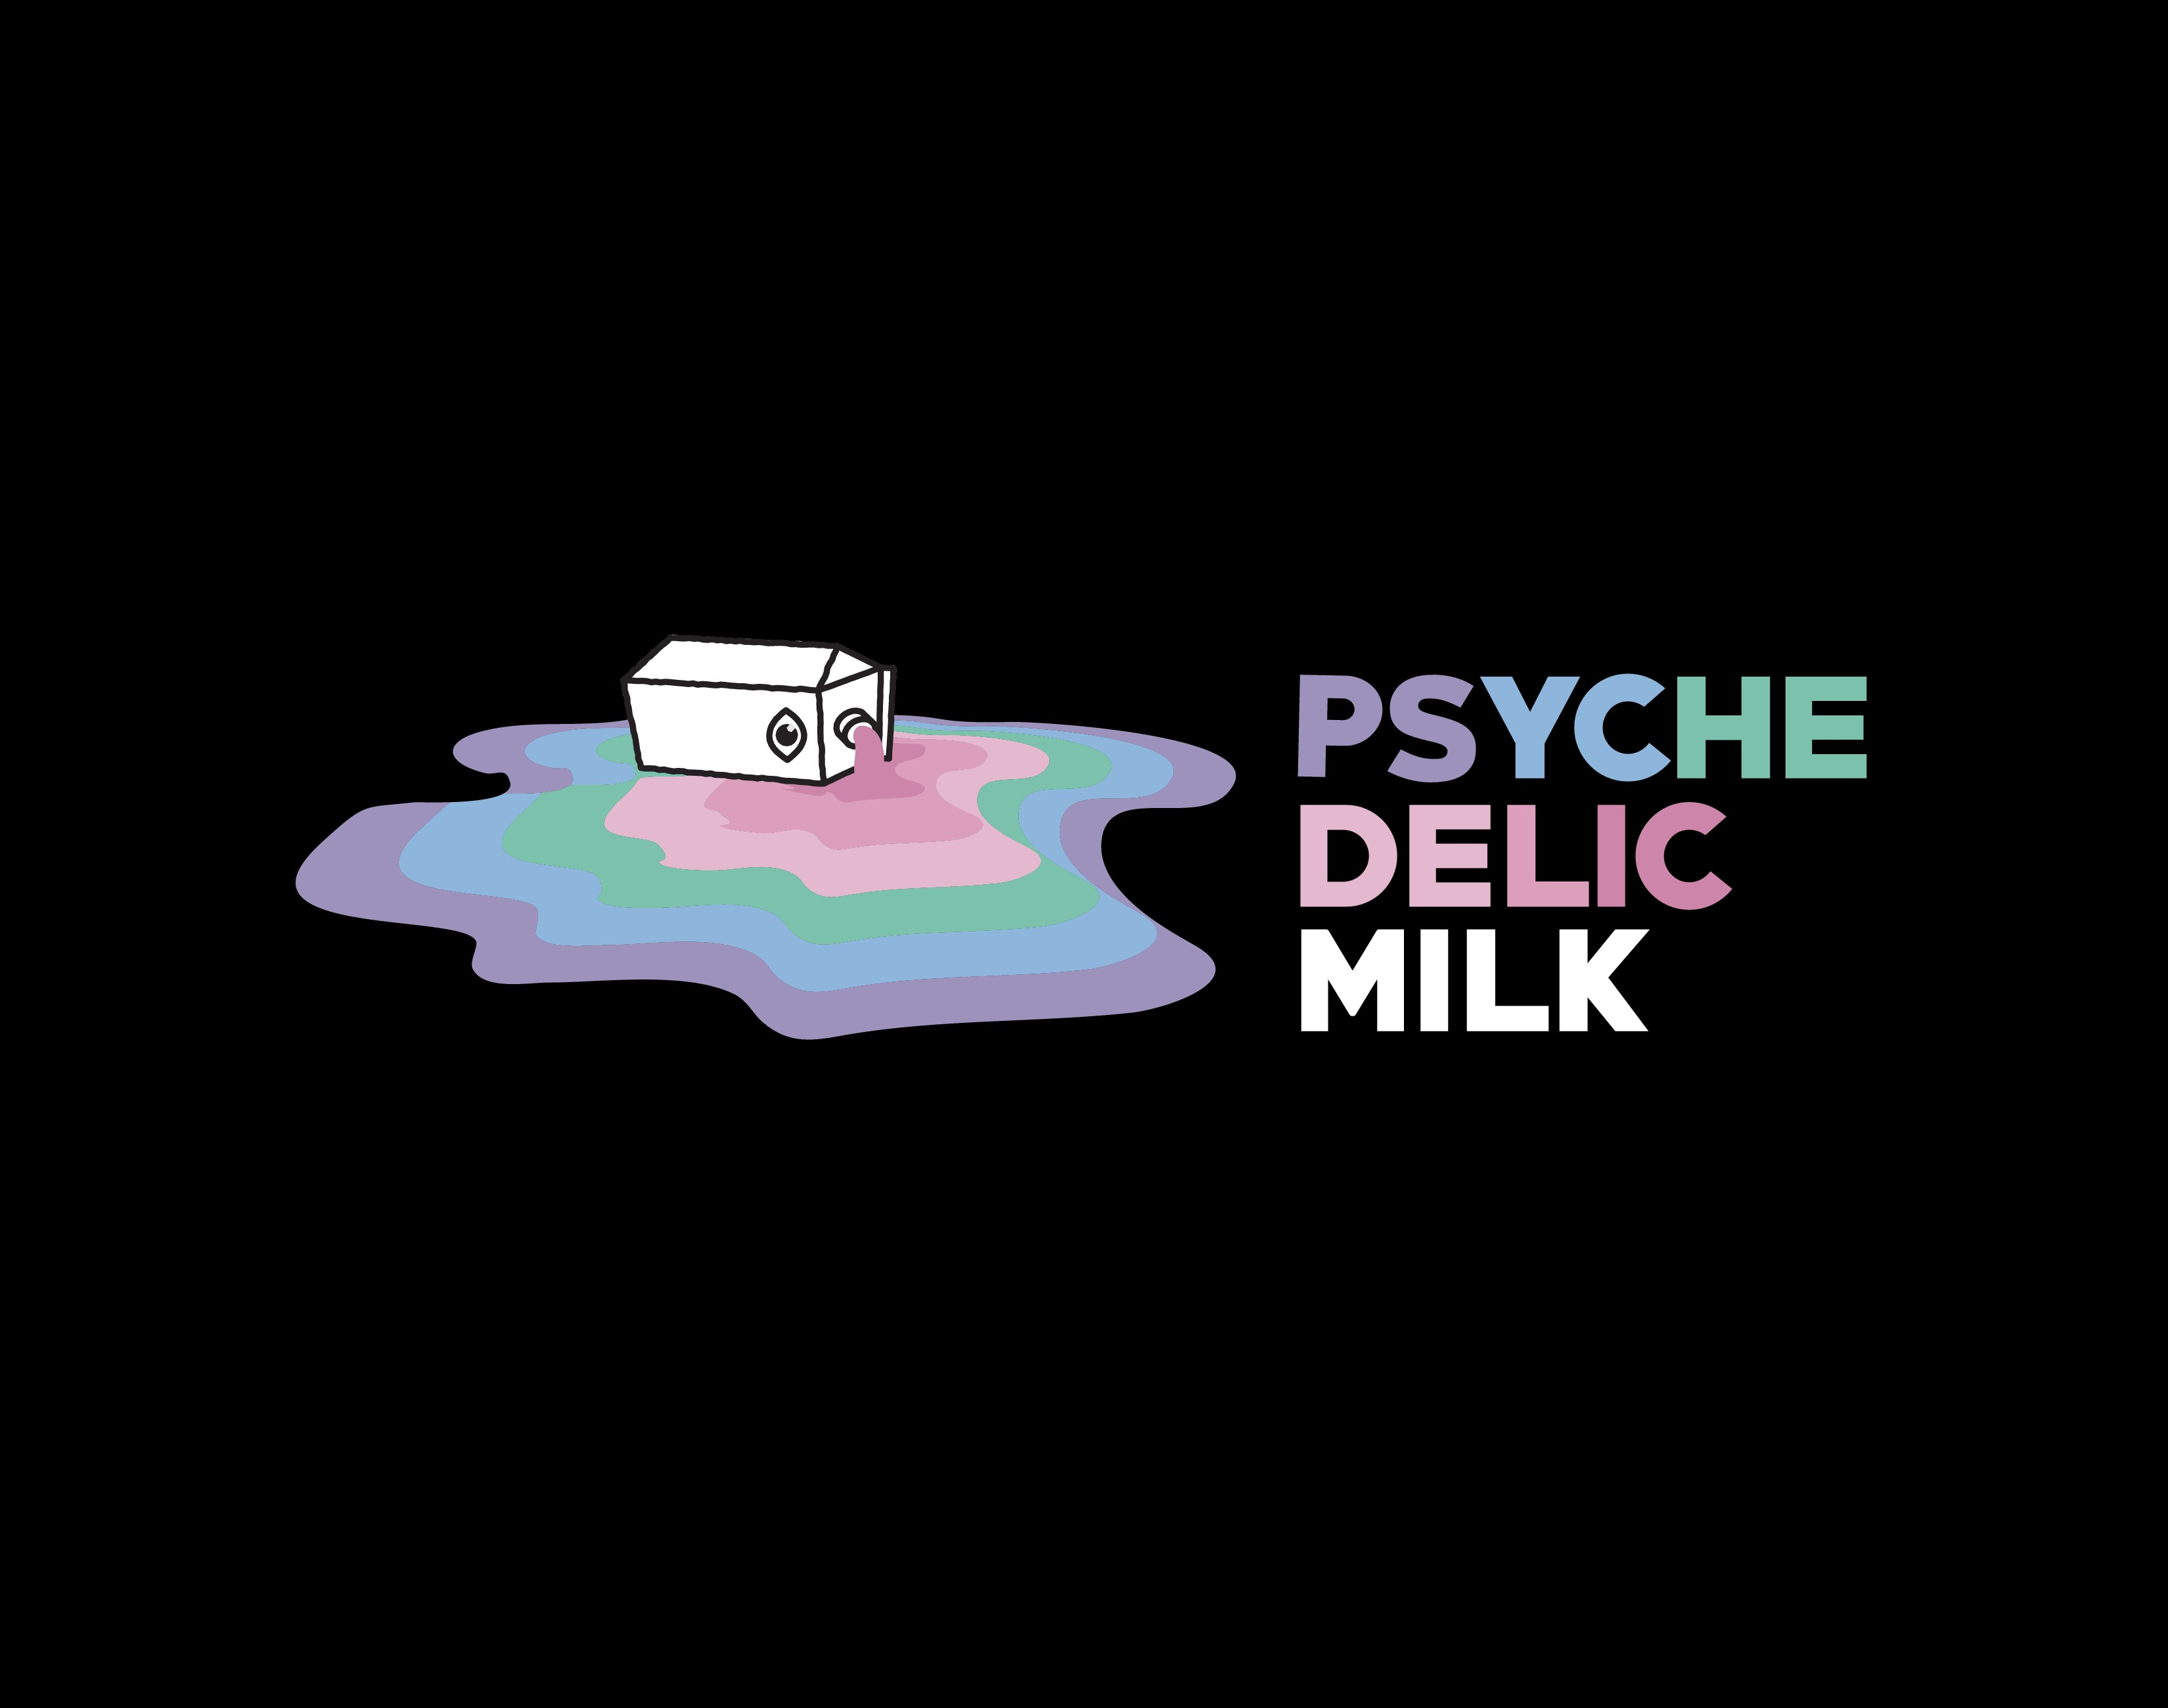 mix of modern/geometric/psychedelic logo for Psychedelic Milk